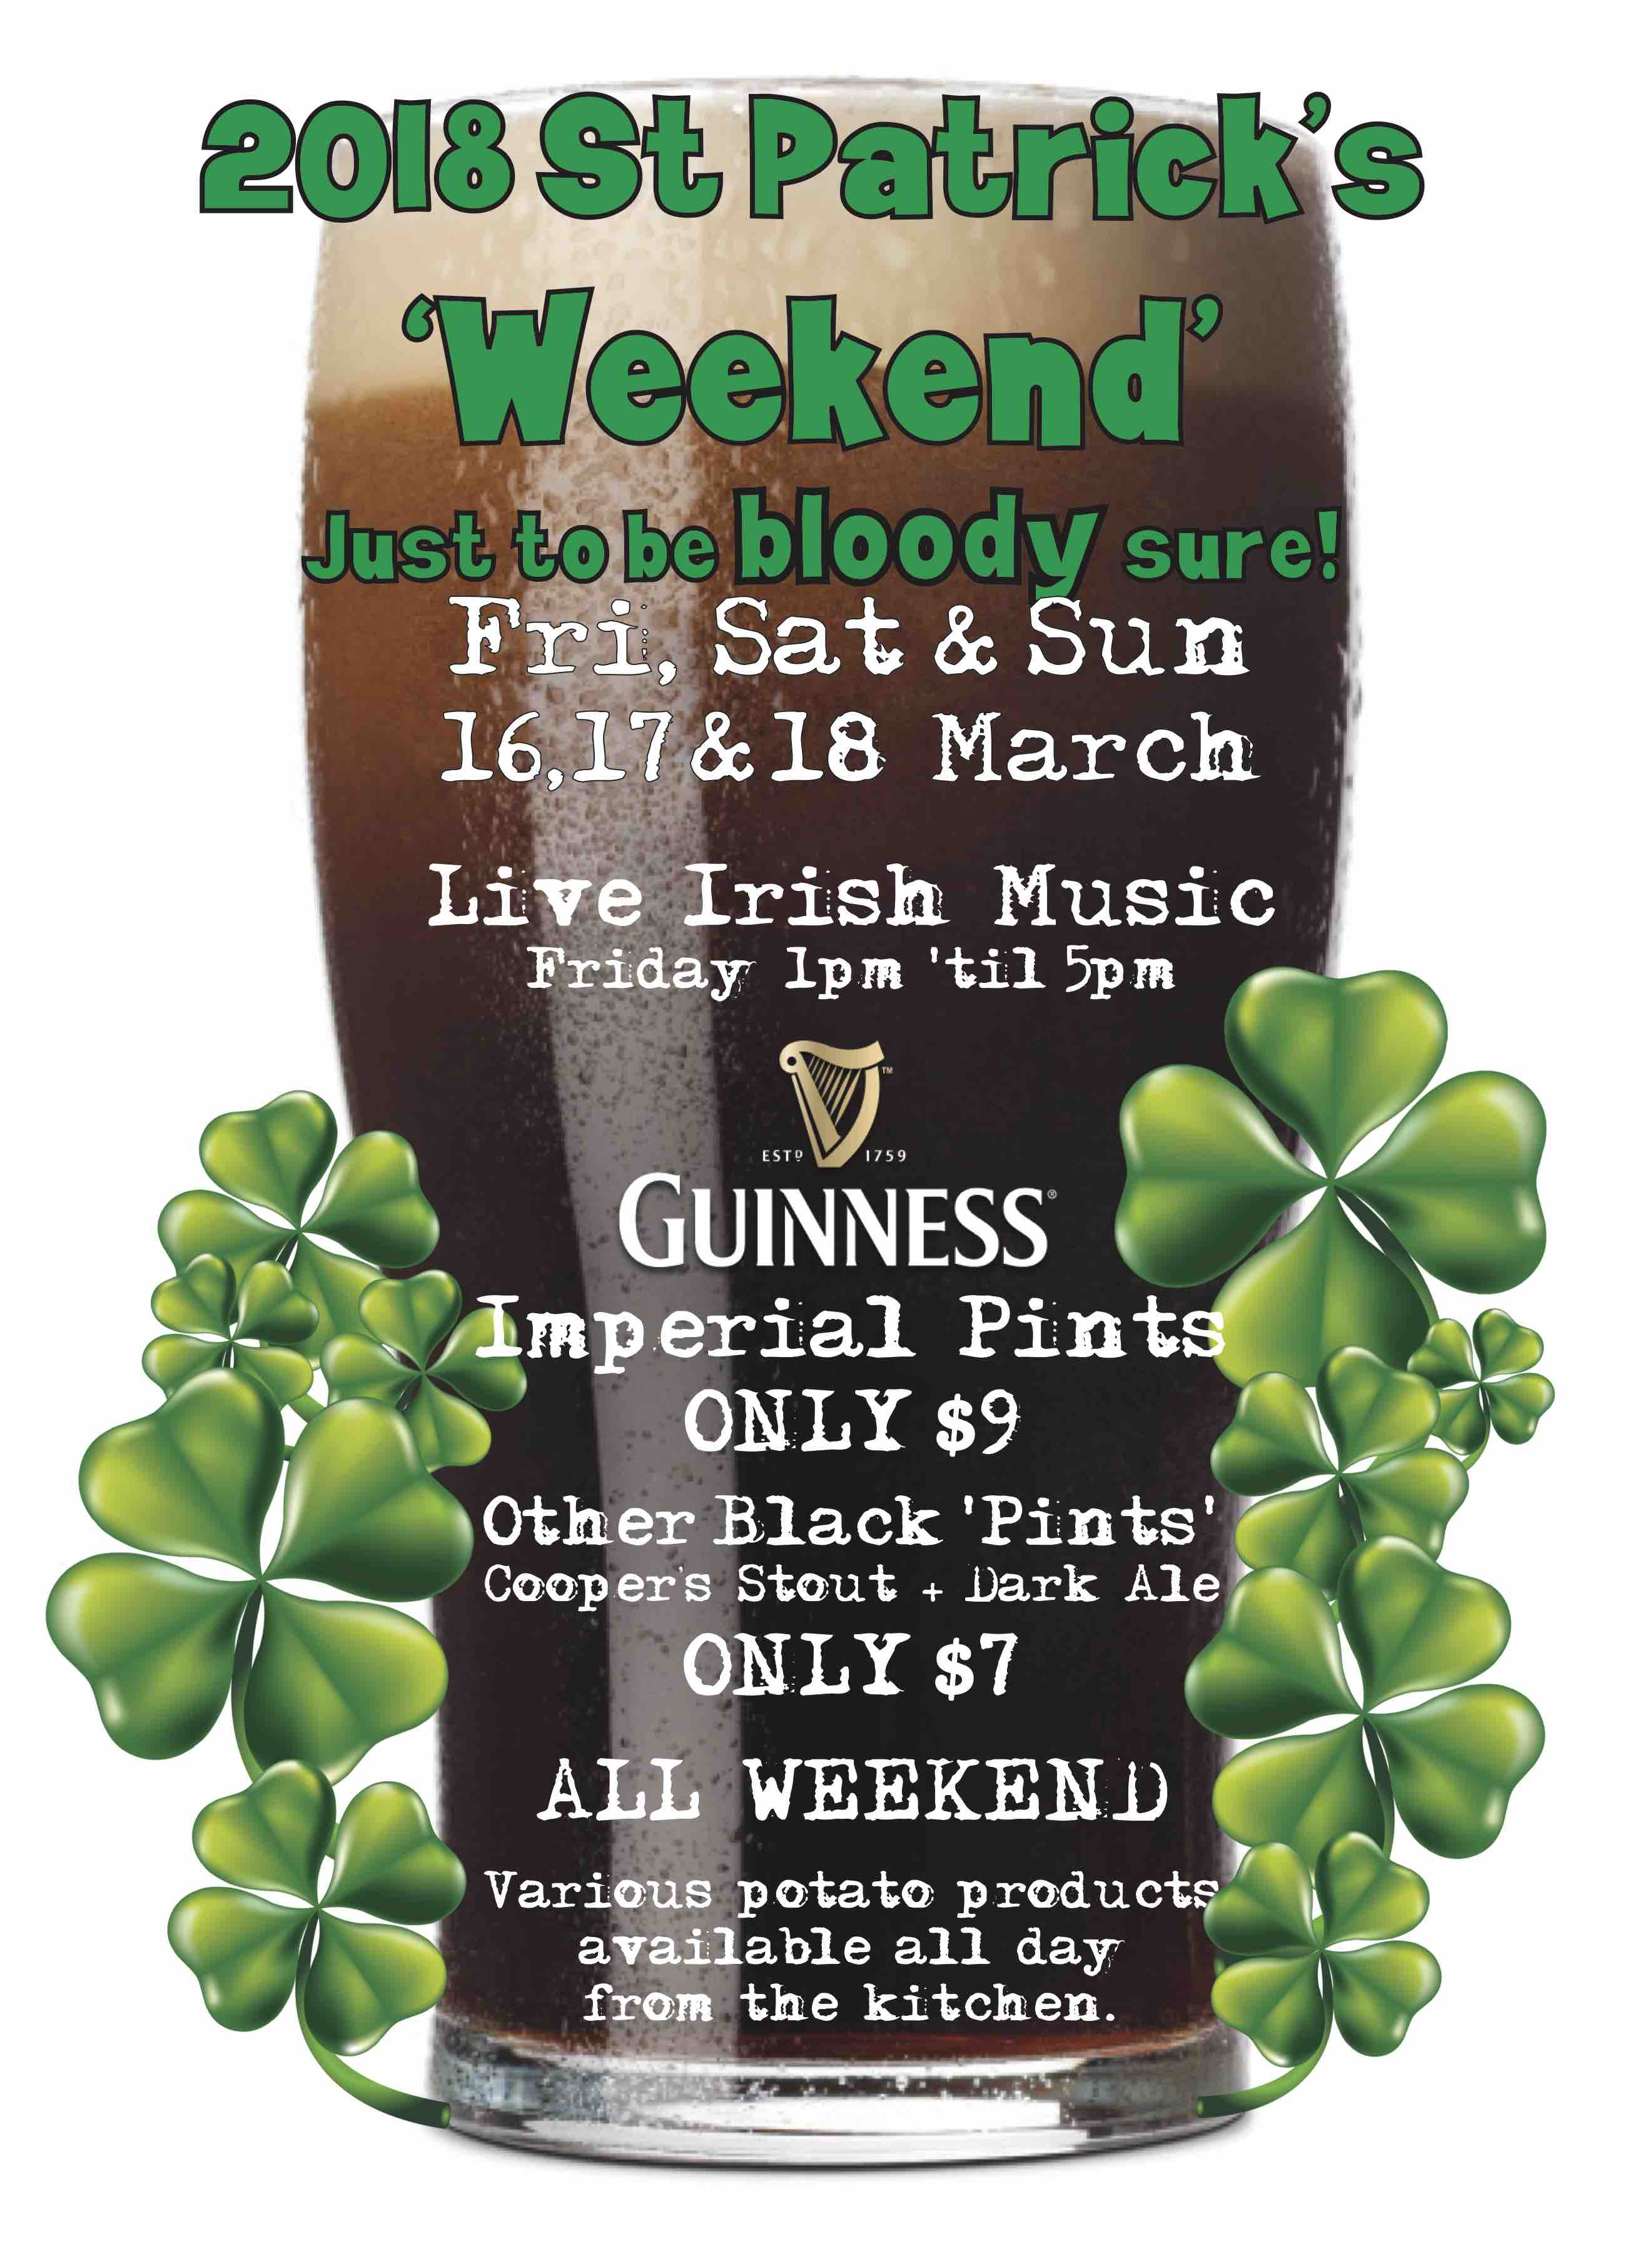 St Patrick's Weekend at The Metro 16,17 & 18 Mar